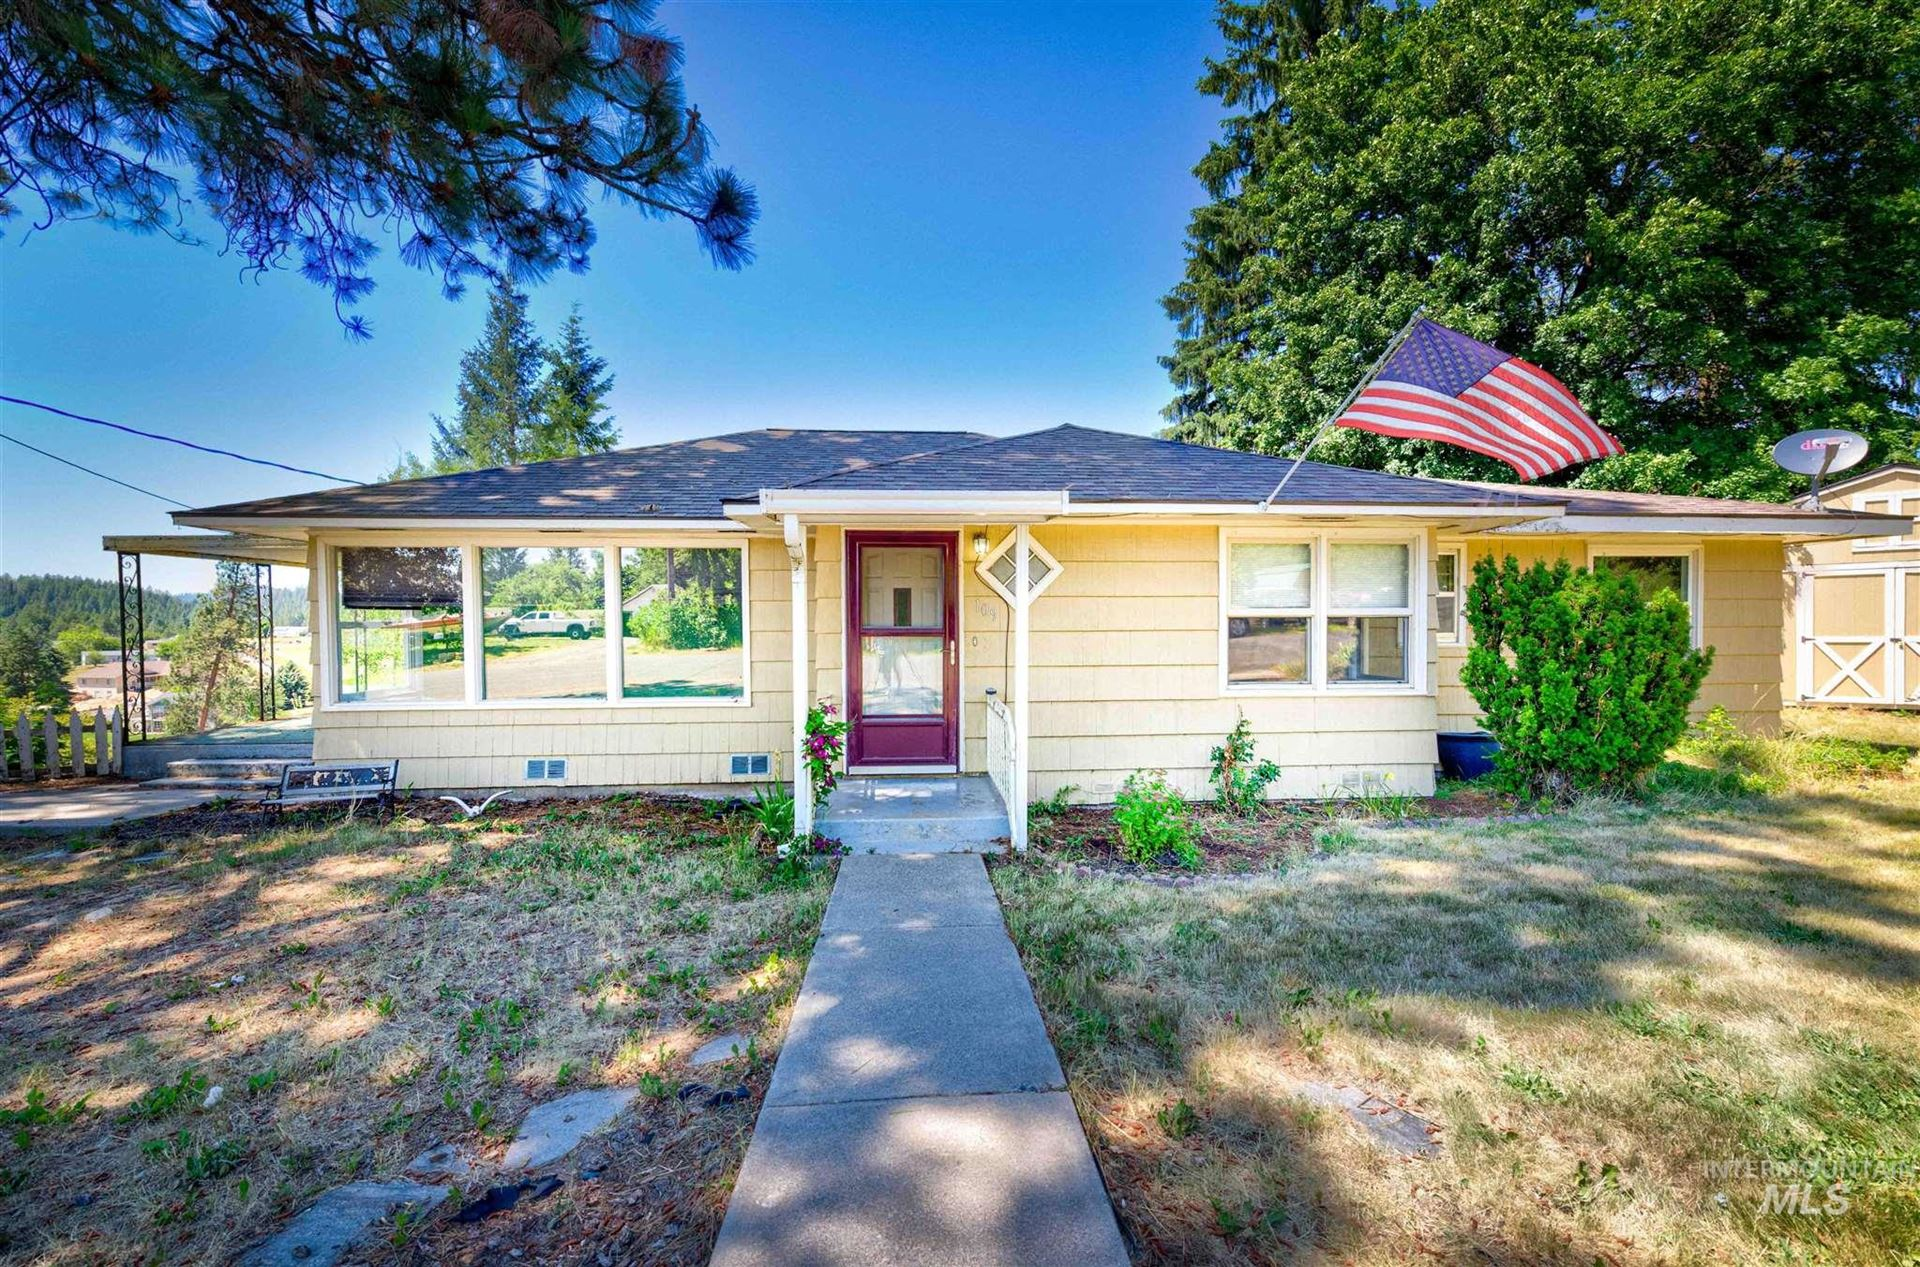 Photo of 109 E A, Troy, ID 83871 (MLS # 98809838)